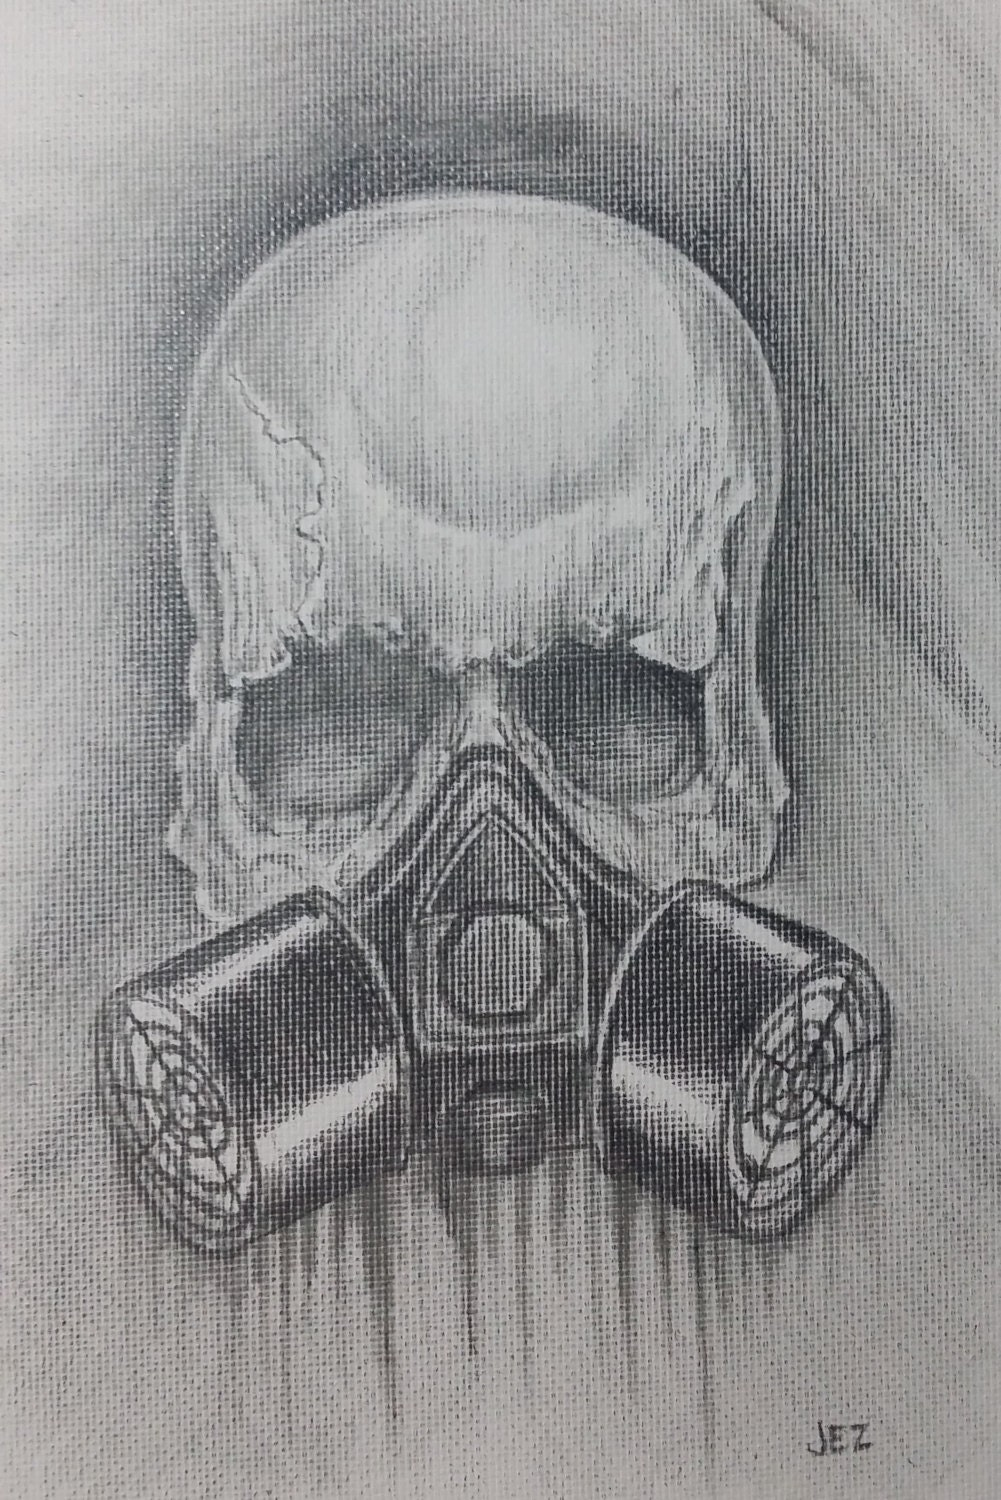 Skull Gas Mask Drawings Skull Gas Mask is it Ever